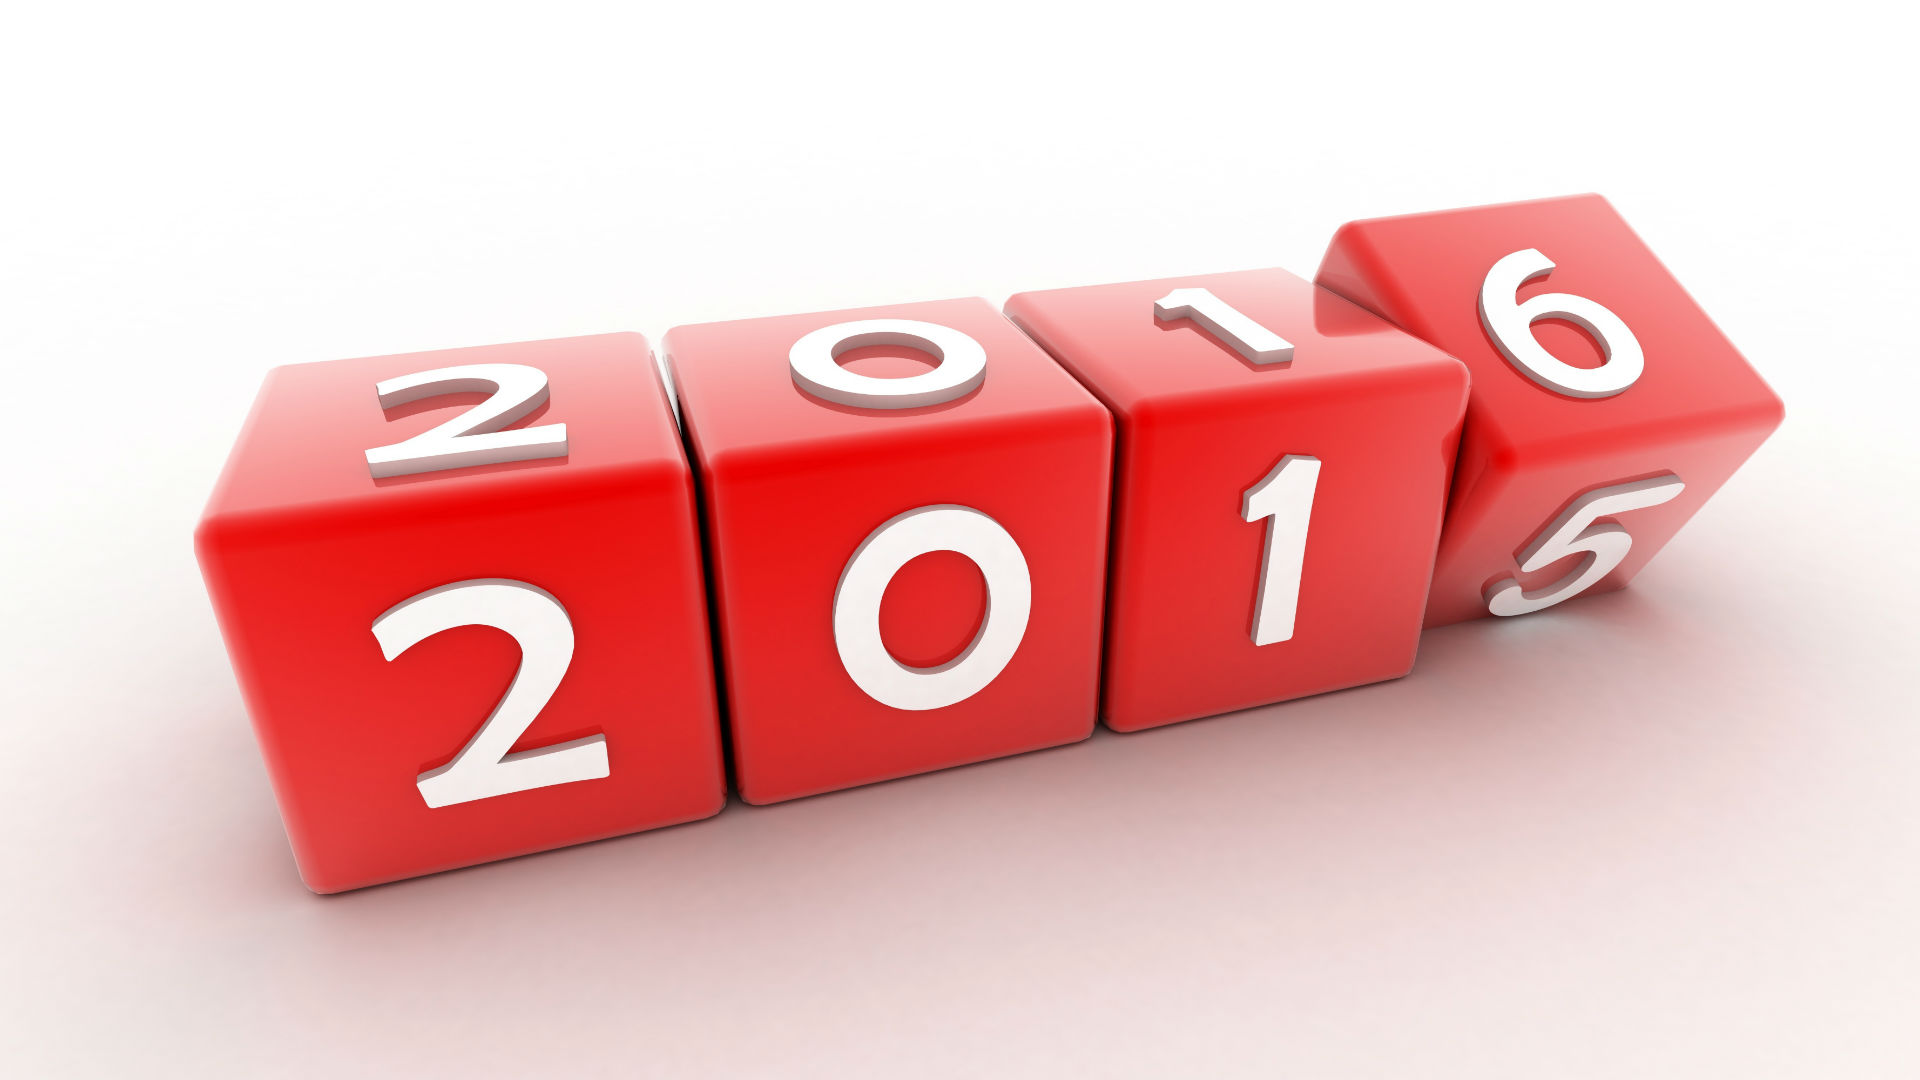 Big Digital Marketing Resolutions For 2016